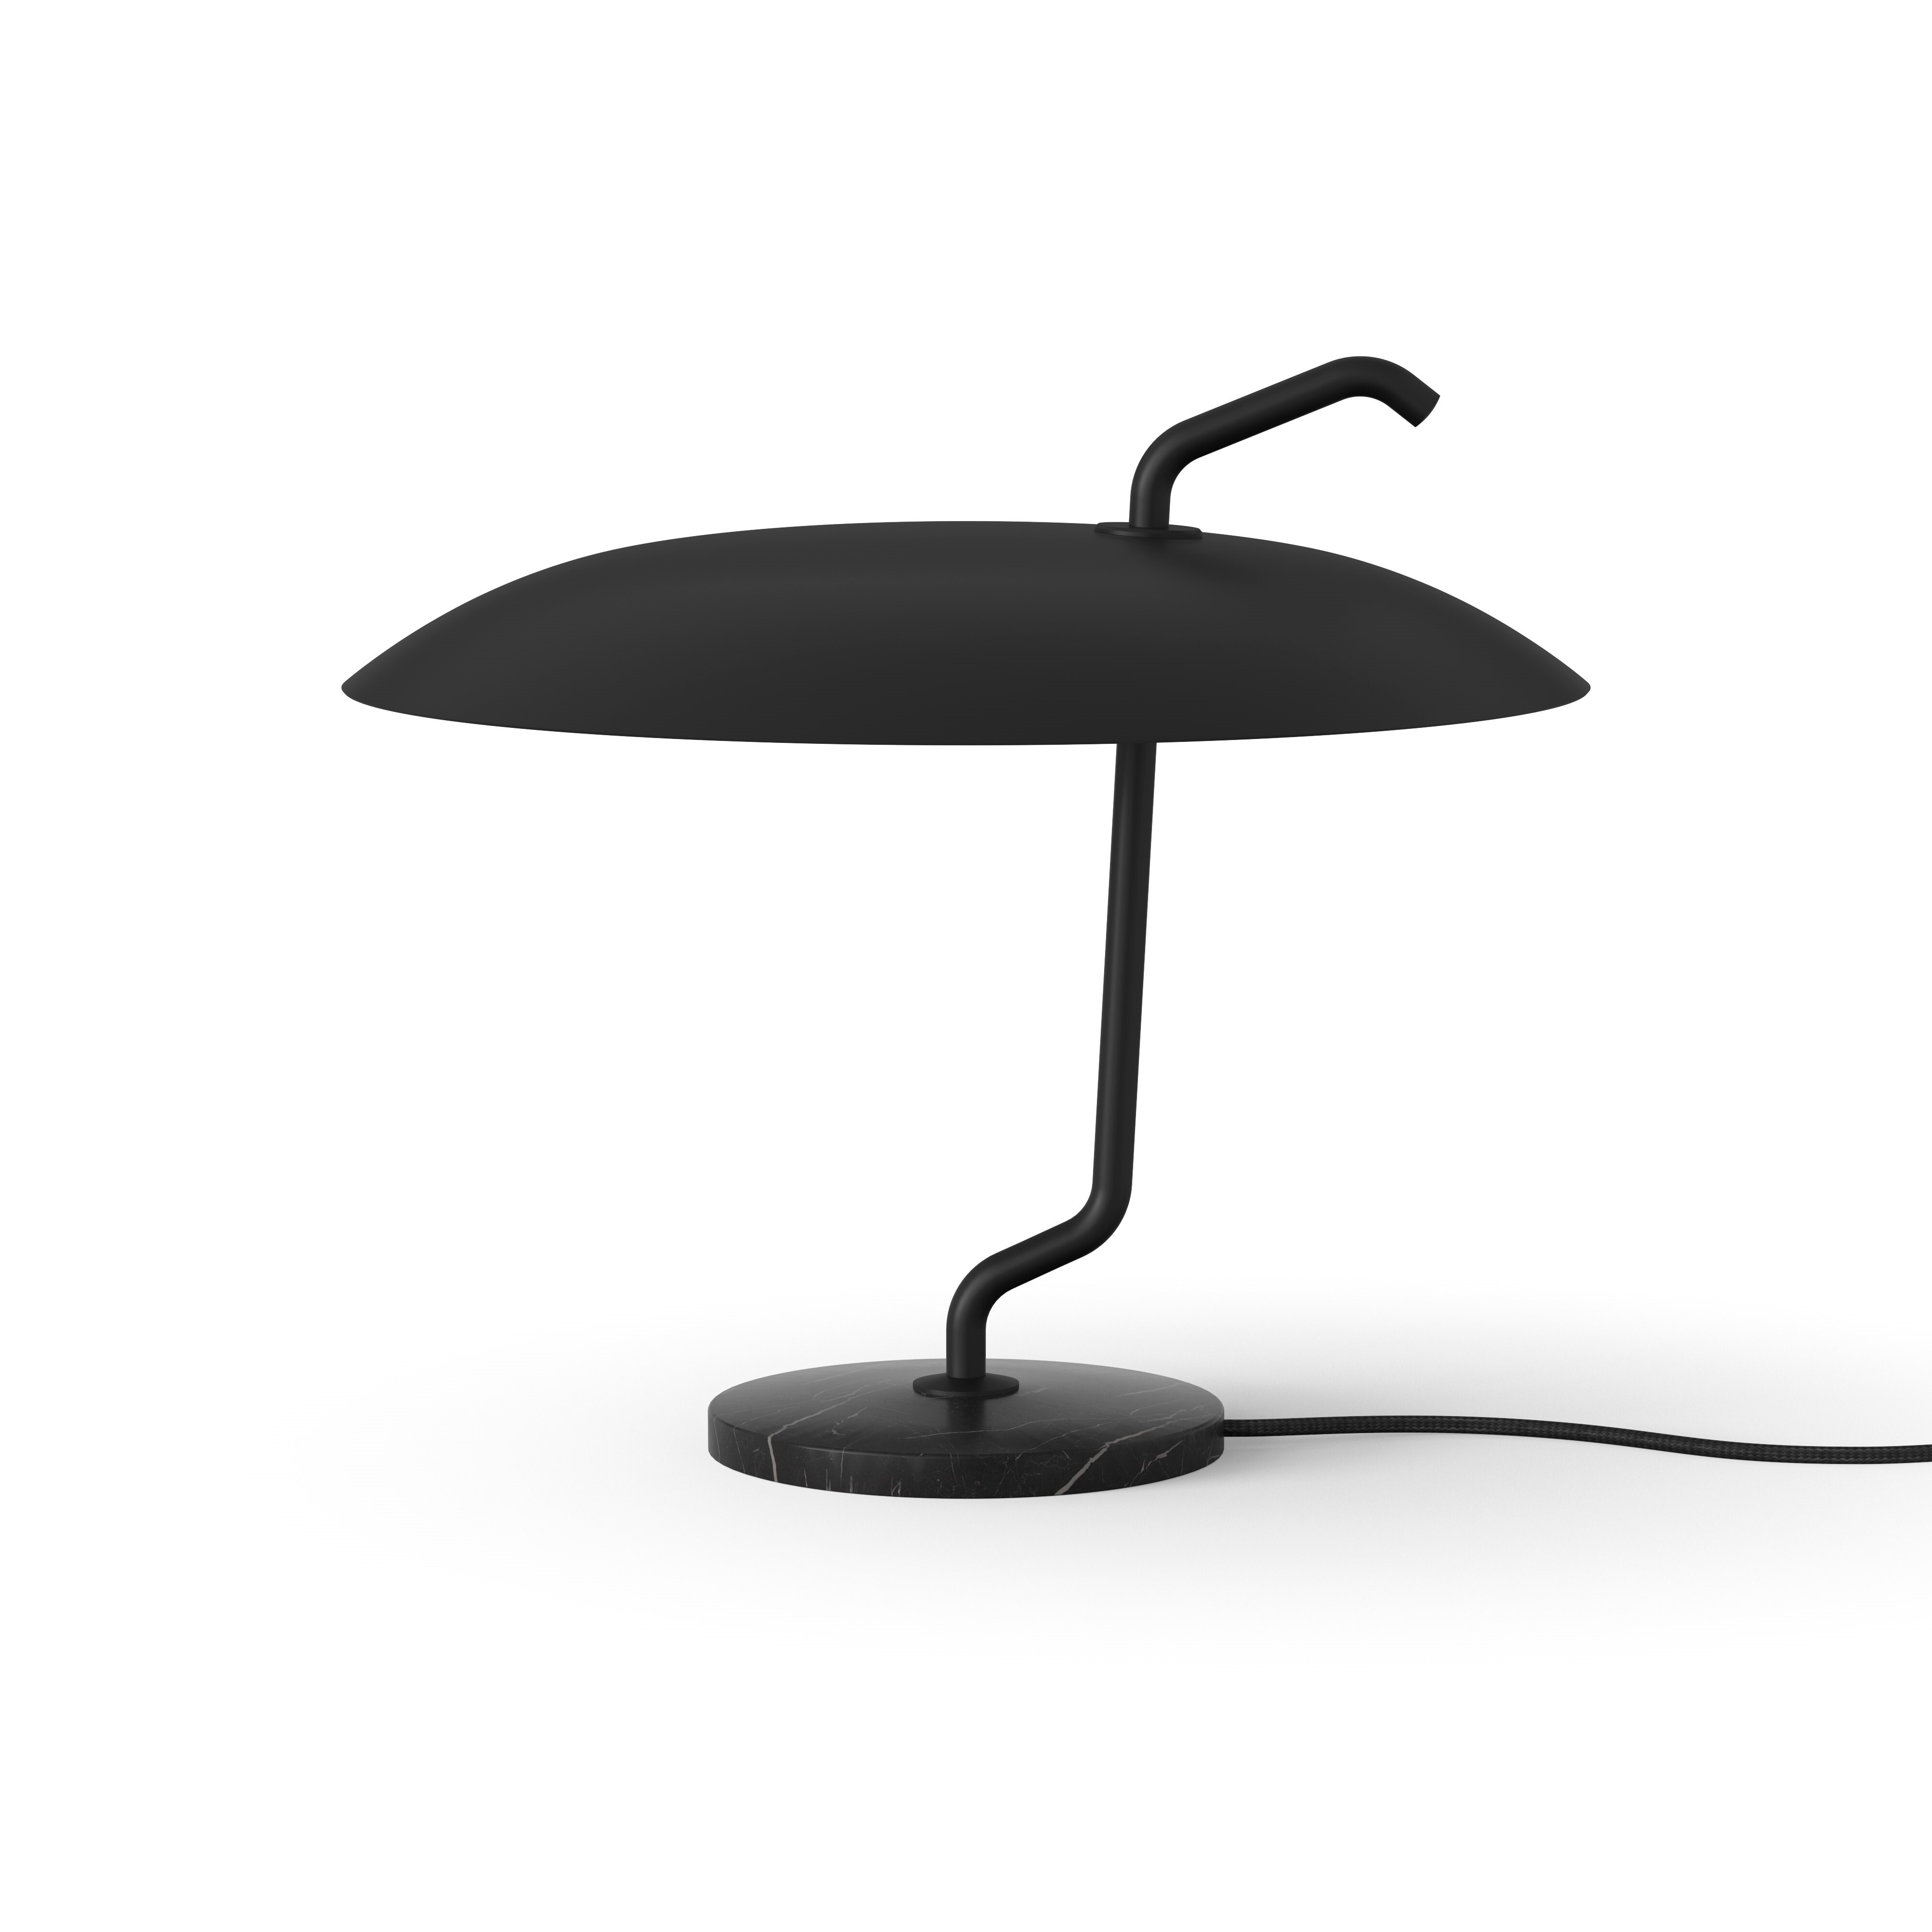 Image of Model 537 Bordlampe Black/Black - Astep (15796084)